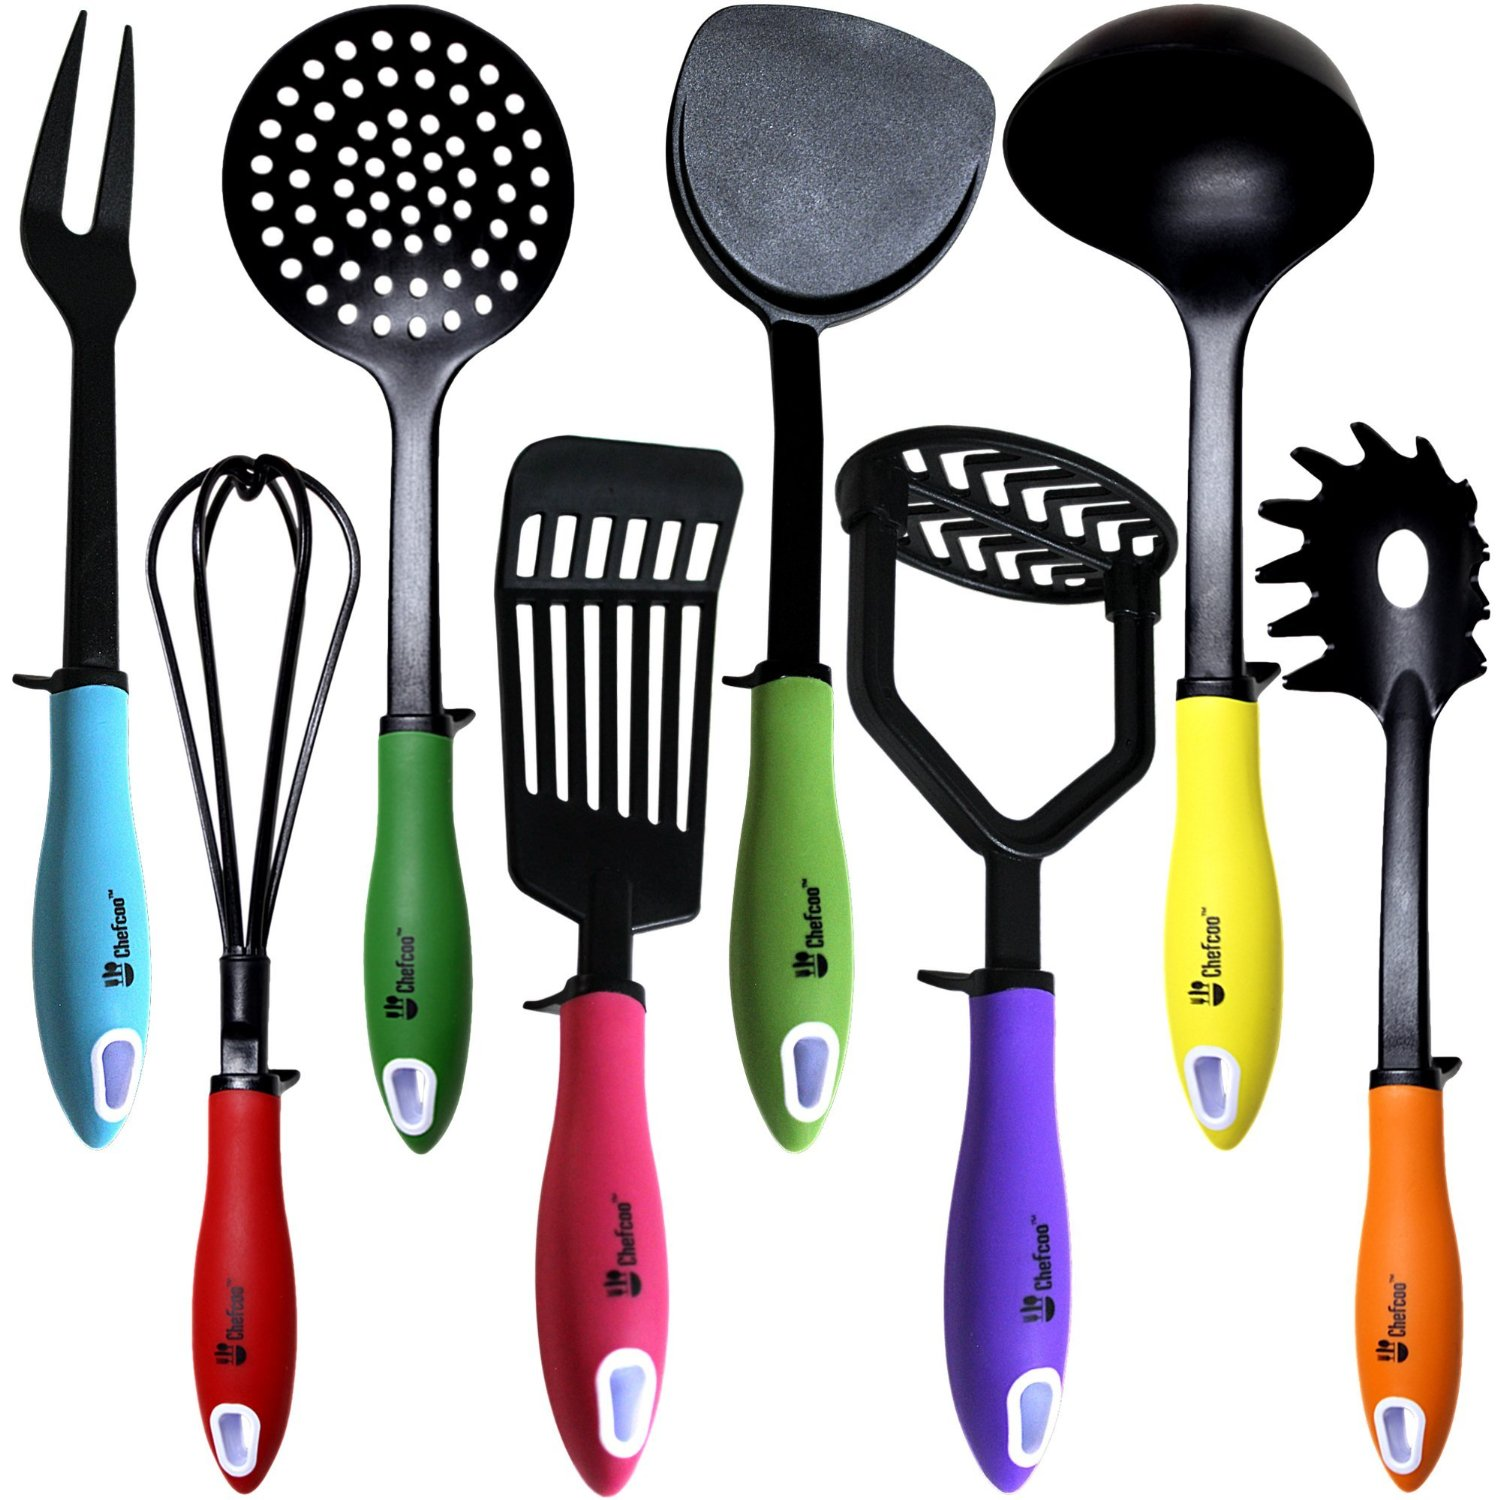 kitchen vessels set estimate for cabinets utensils cooking by chefcoo includes 8 pieces non stick